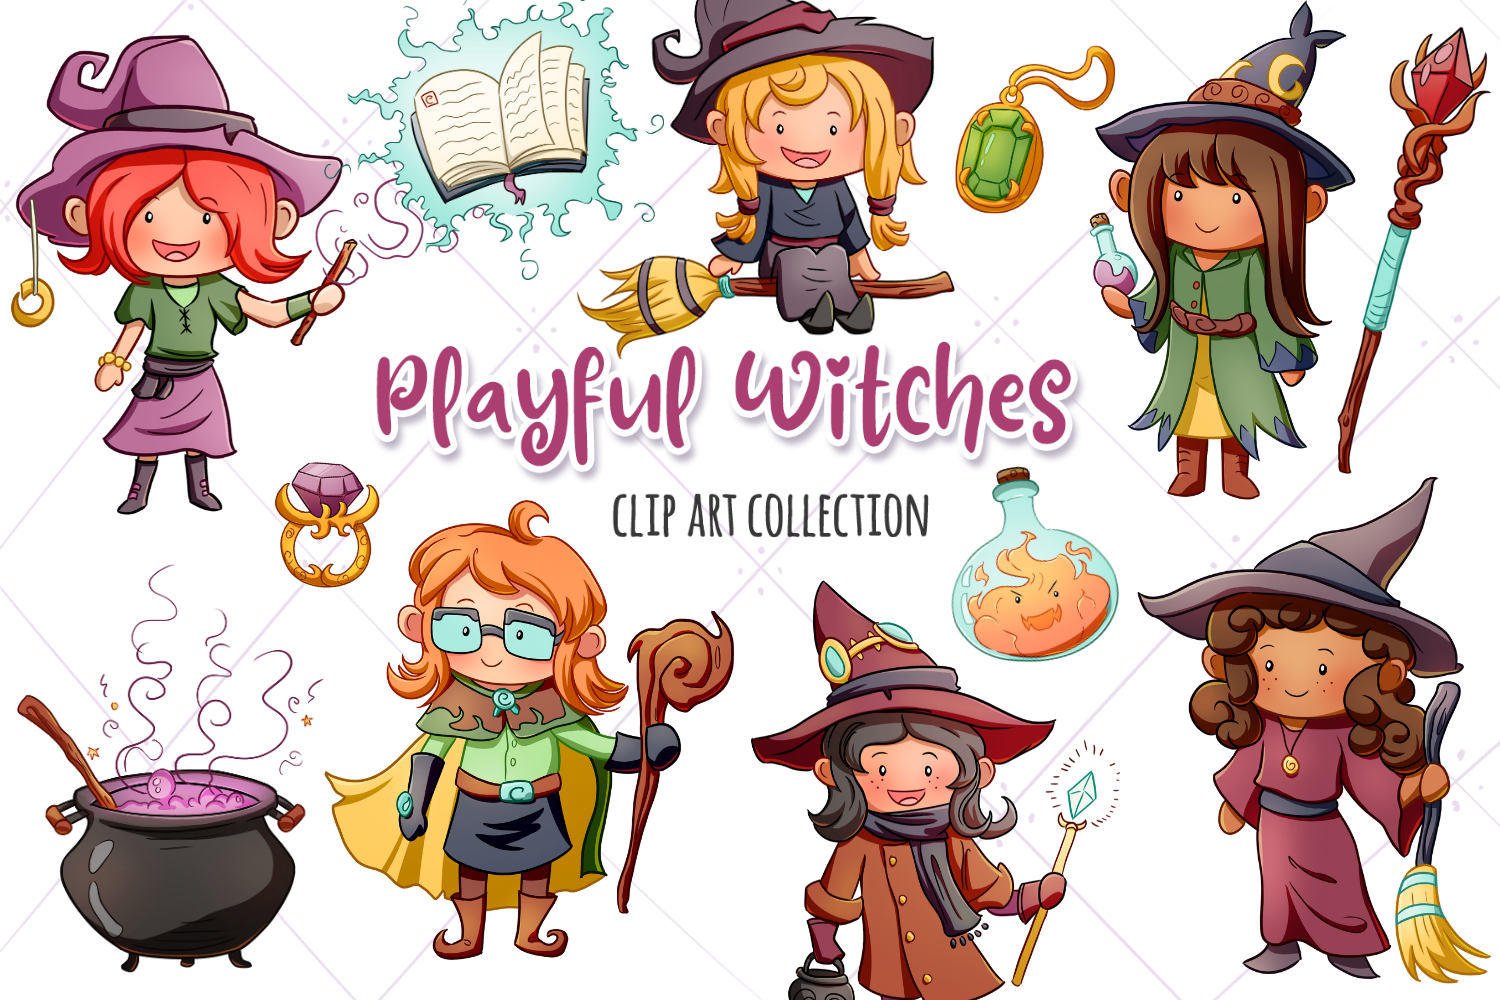 Playful Witches Fantasy Clip Art Collection example image 1